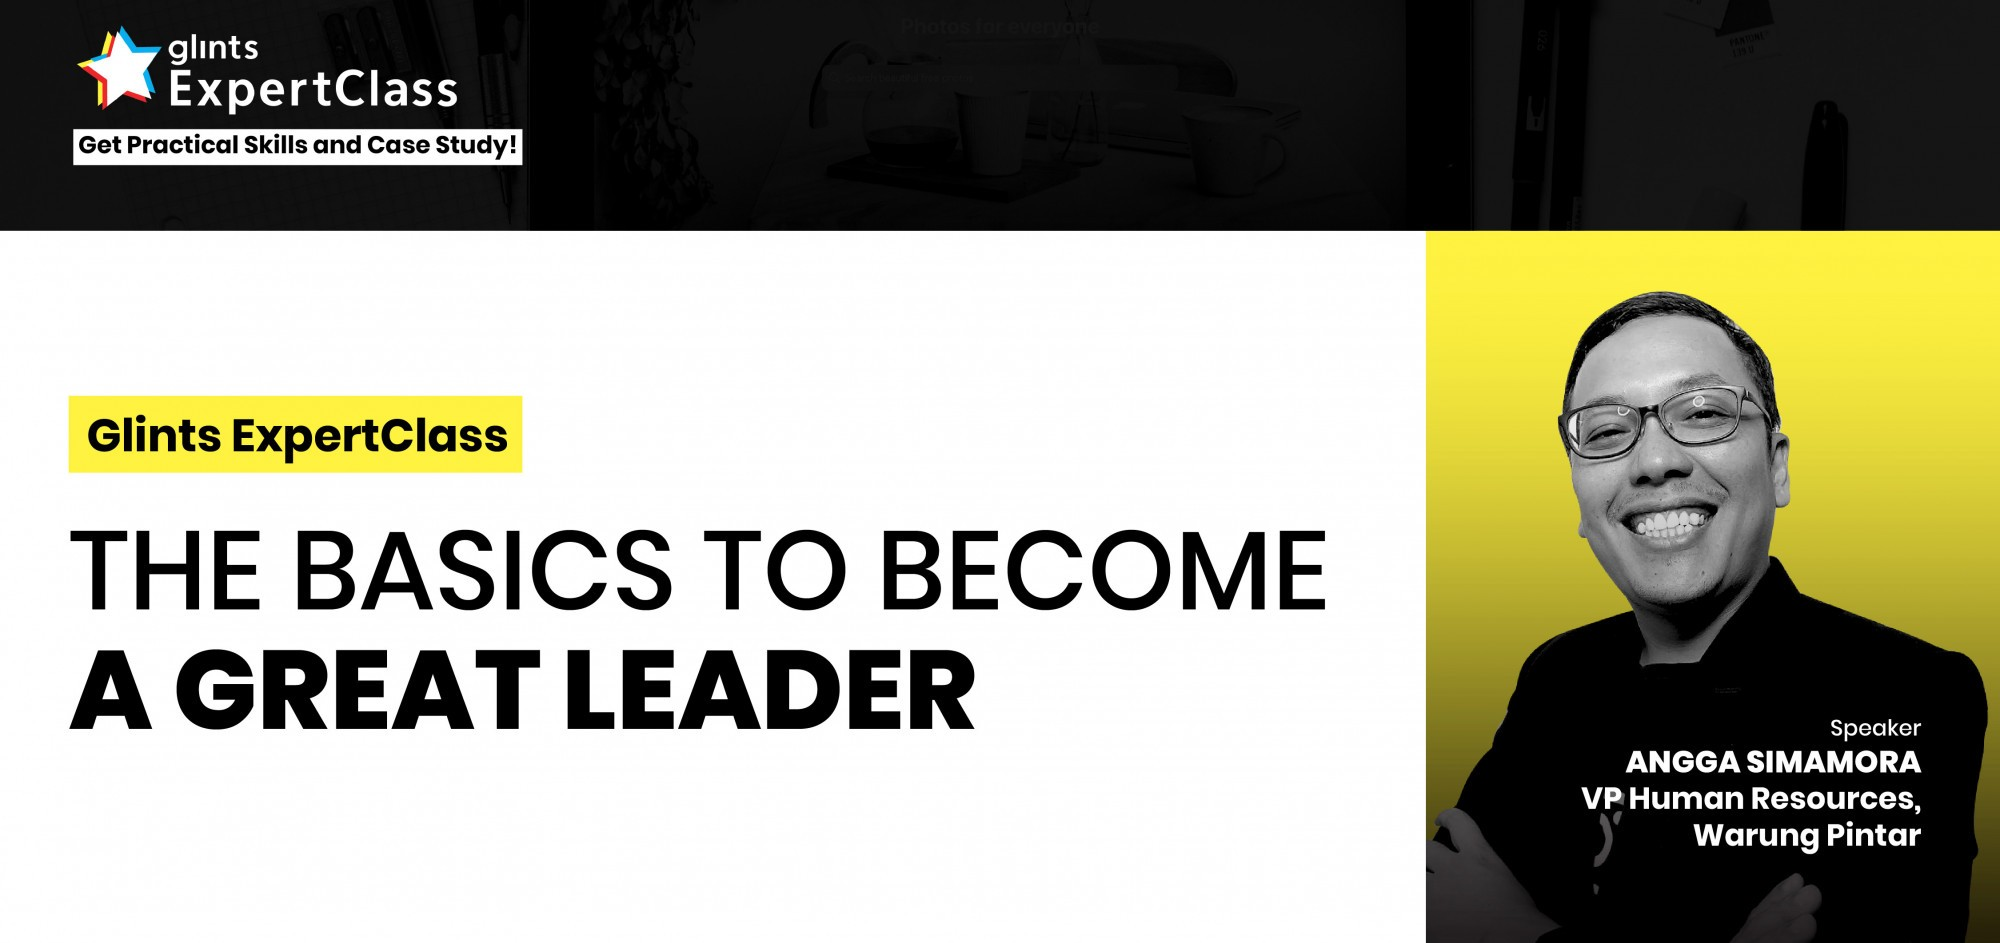 [Online Glints ExpertClass] The Basics to Become a Great Leader